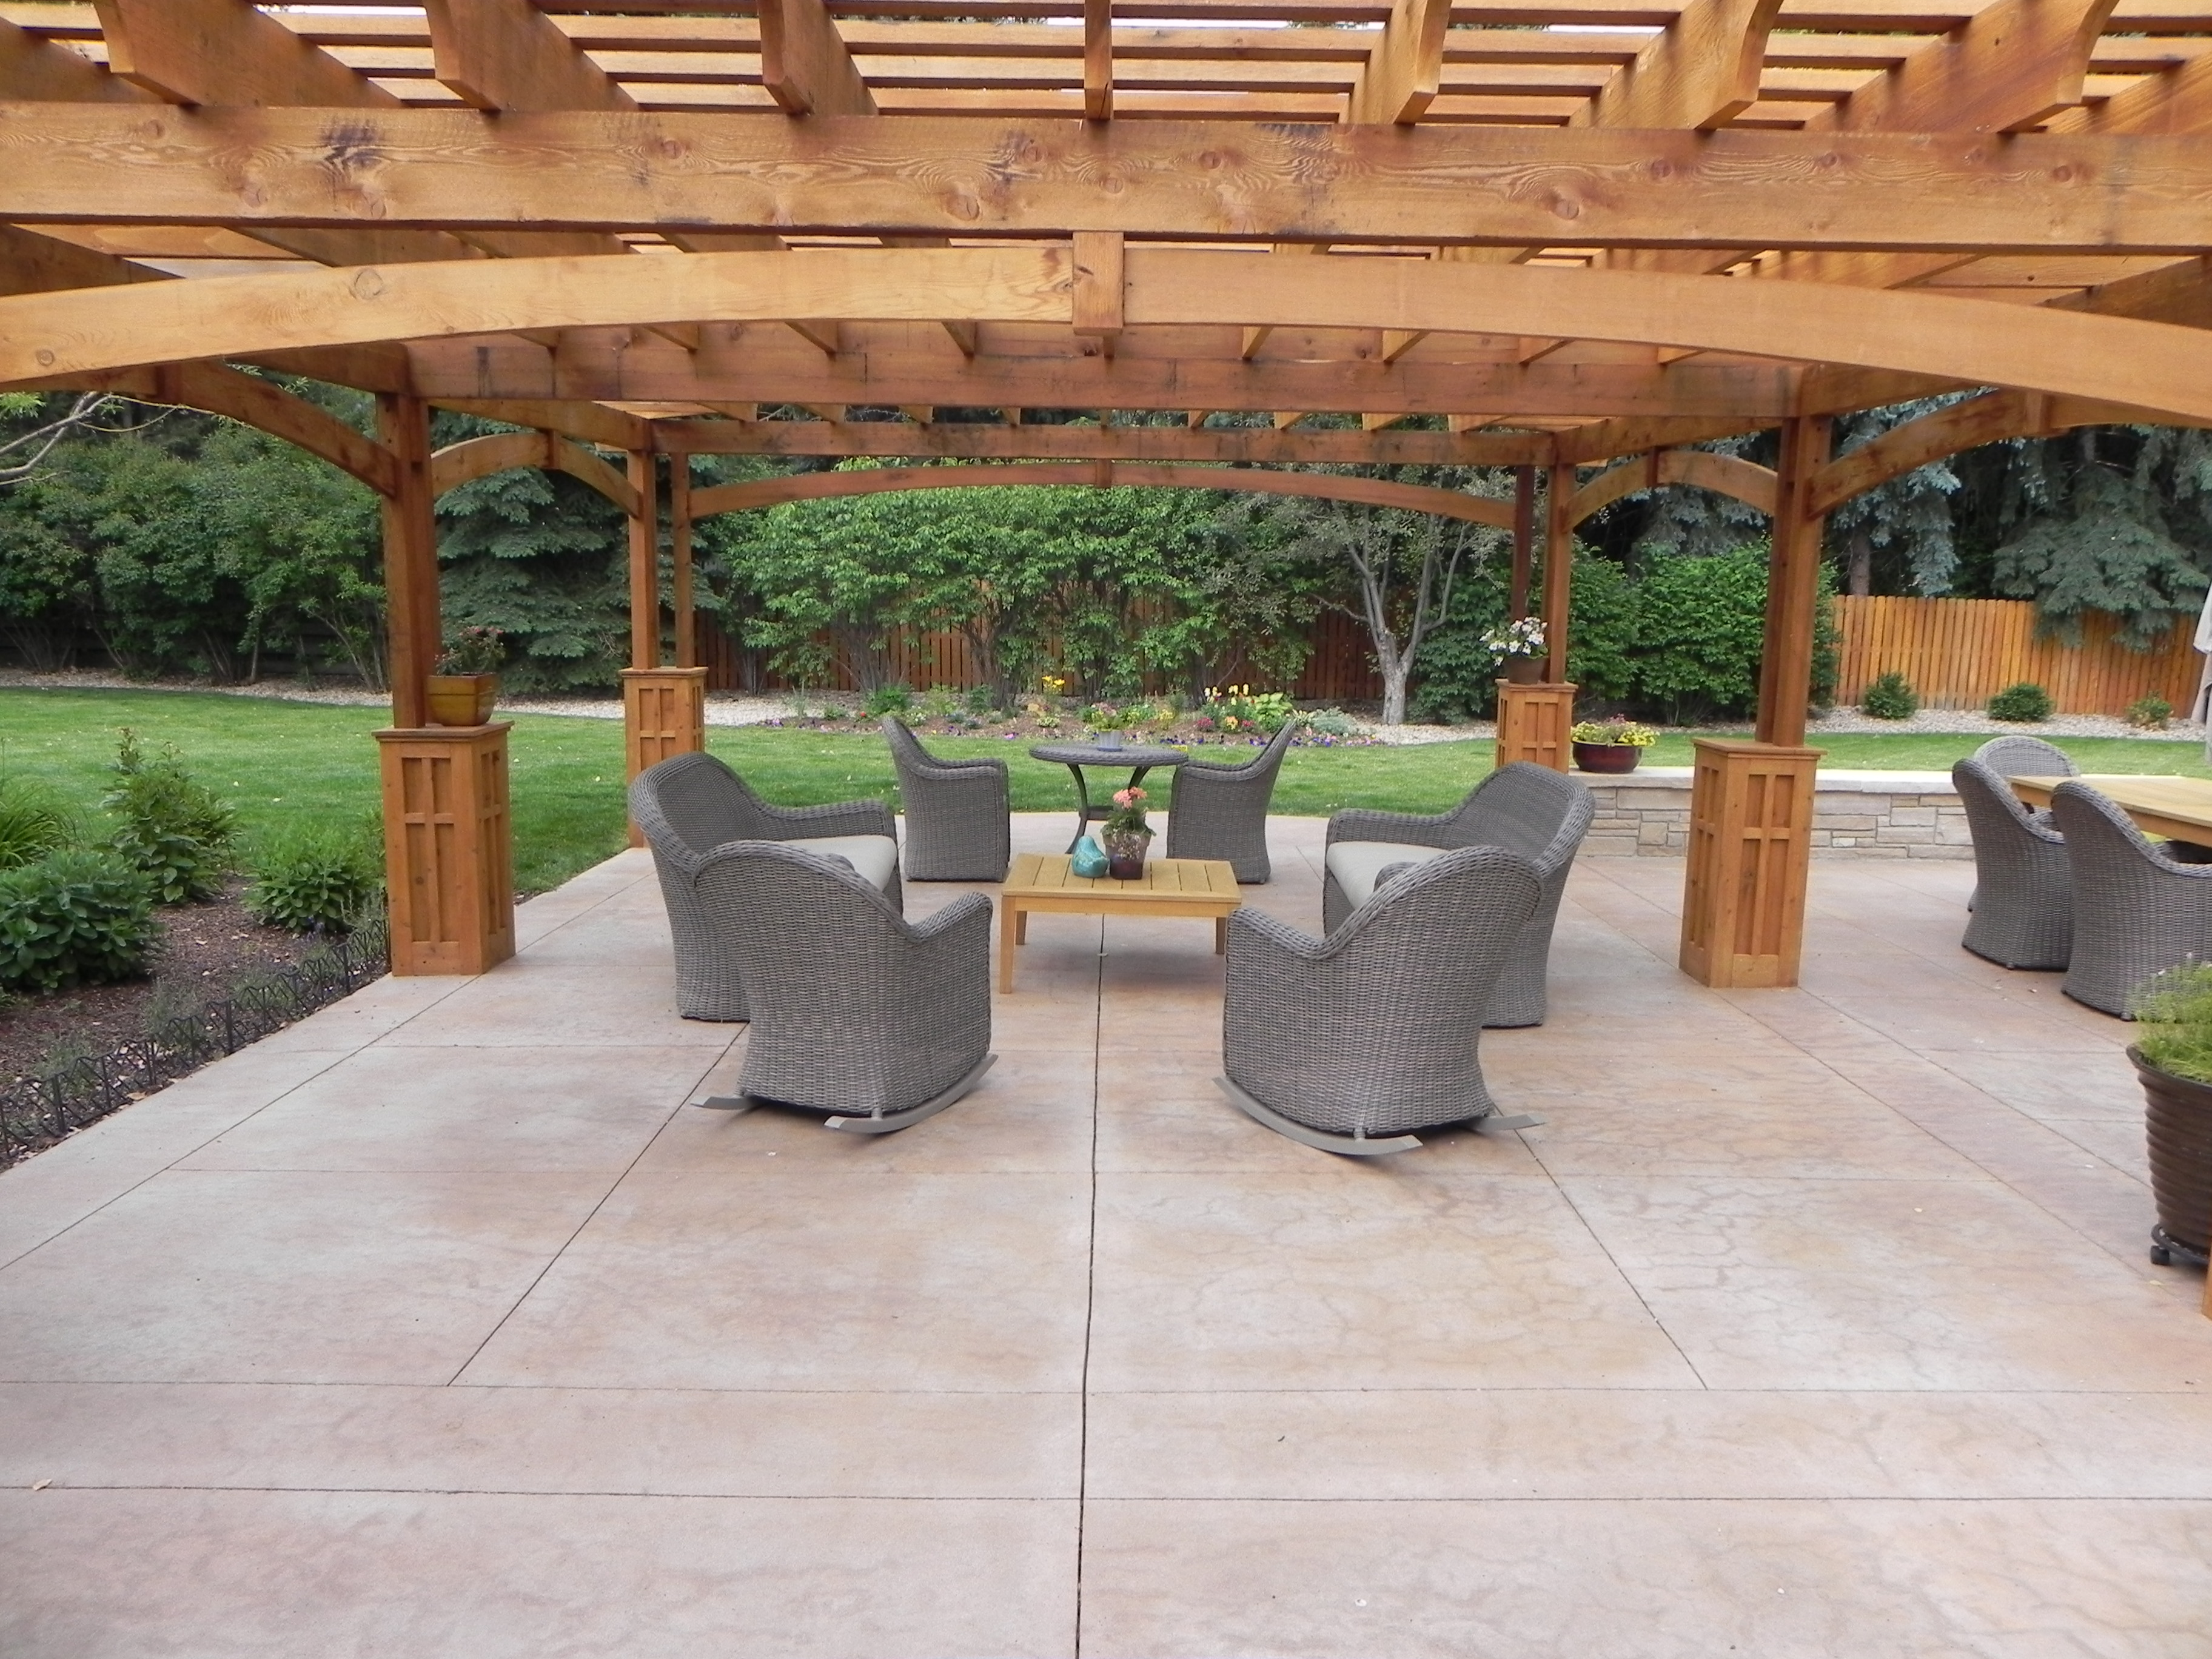 Pergola Over A Stamped Concrete Patio